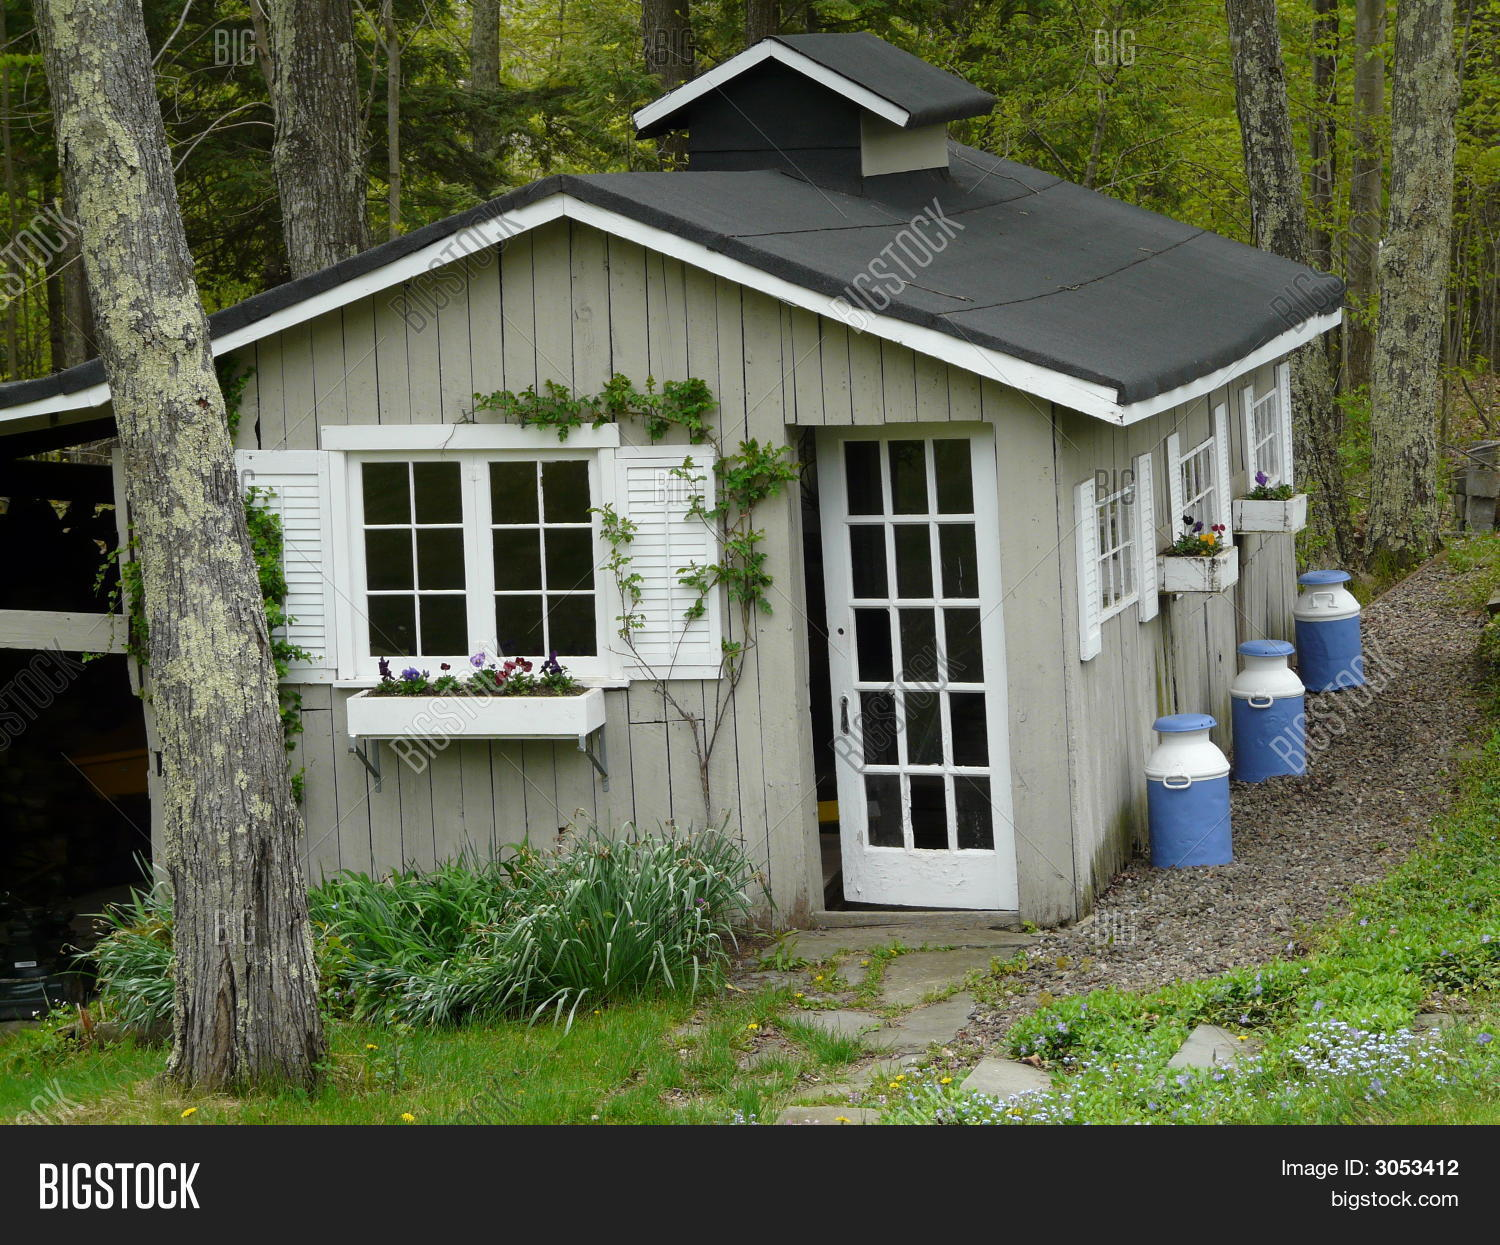 Pretty garden shed image photo bigstock for Pretty garden sheds